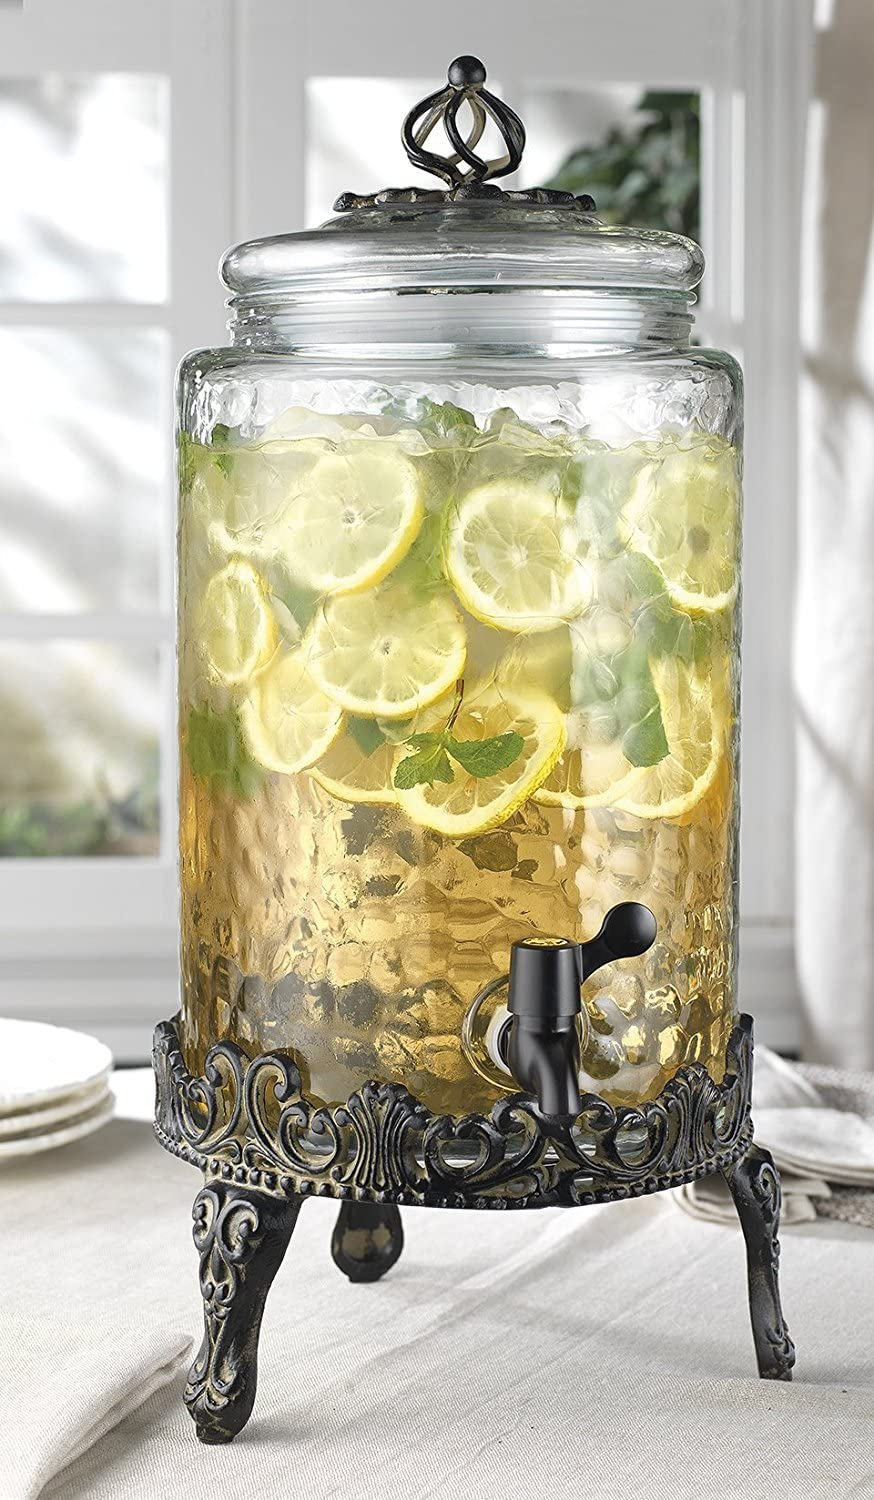 Elegant Home Hammered Glass Beverage Dispenser - 2.7 Gallon, with Glass Lid and Antique Metal Stand